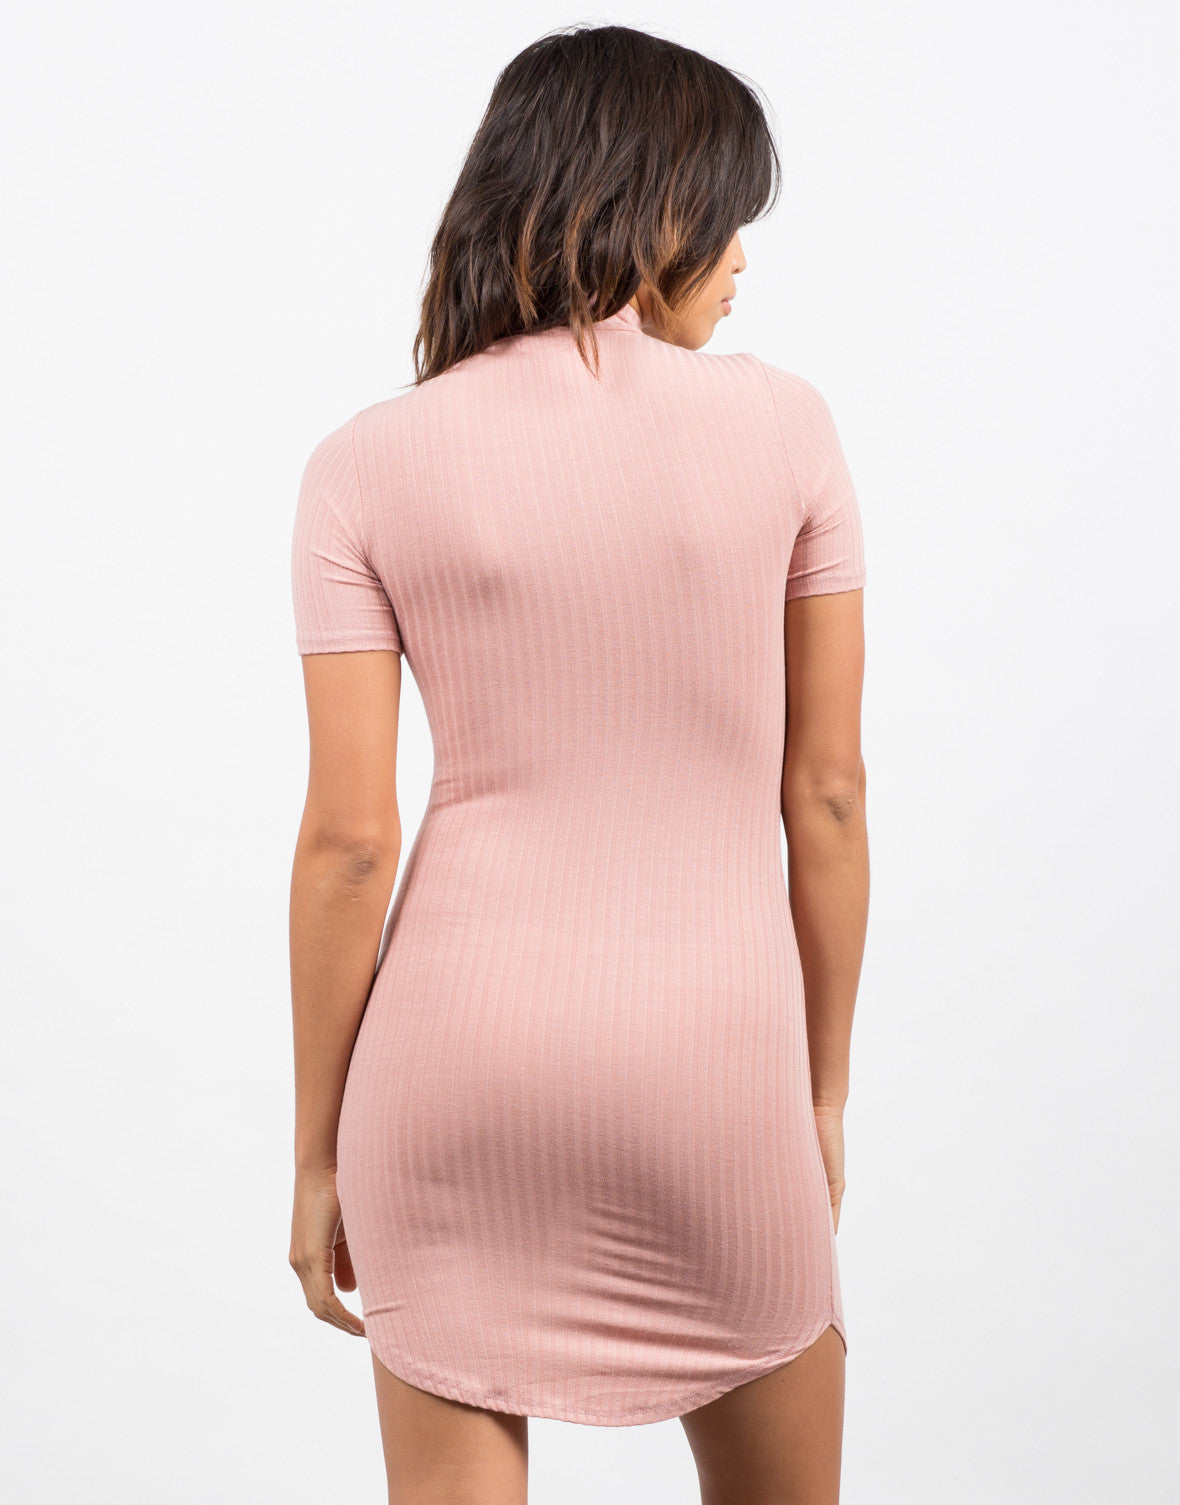 Back View of Ribbed T-Shirt Dress